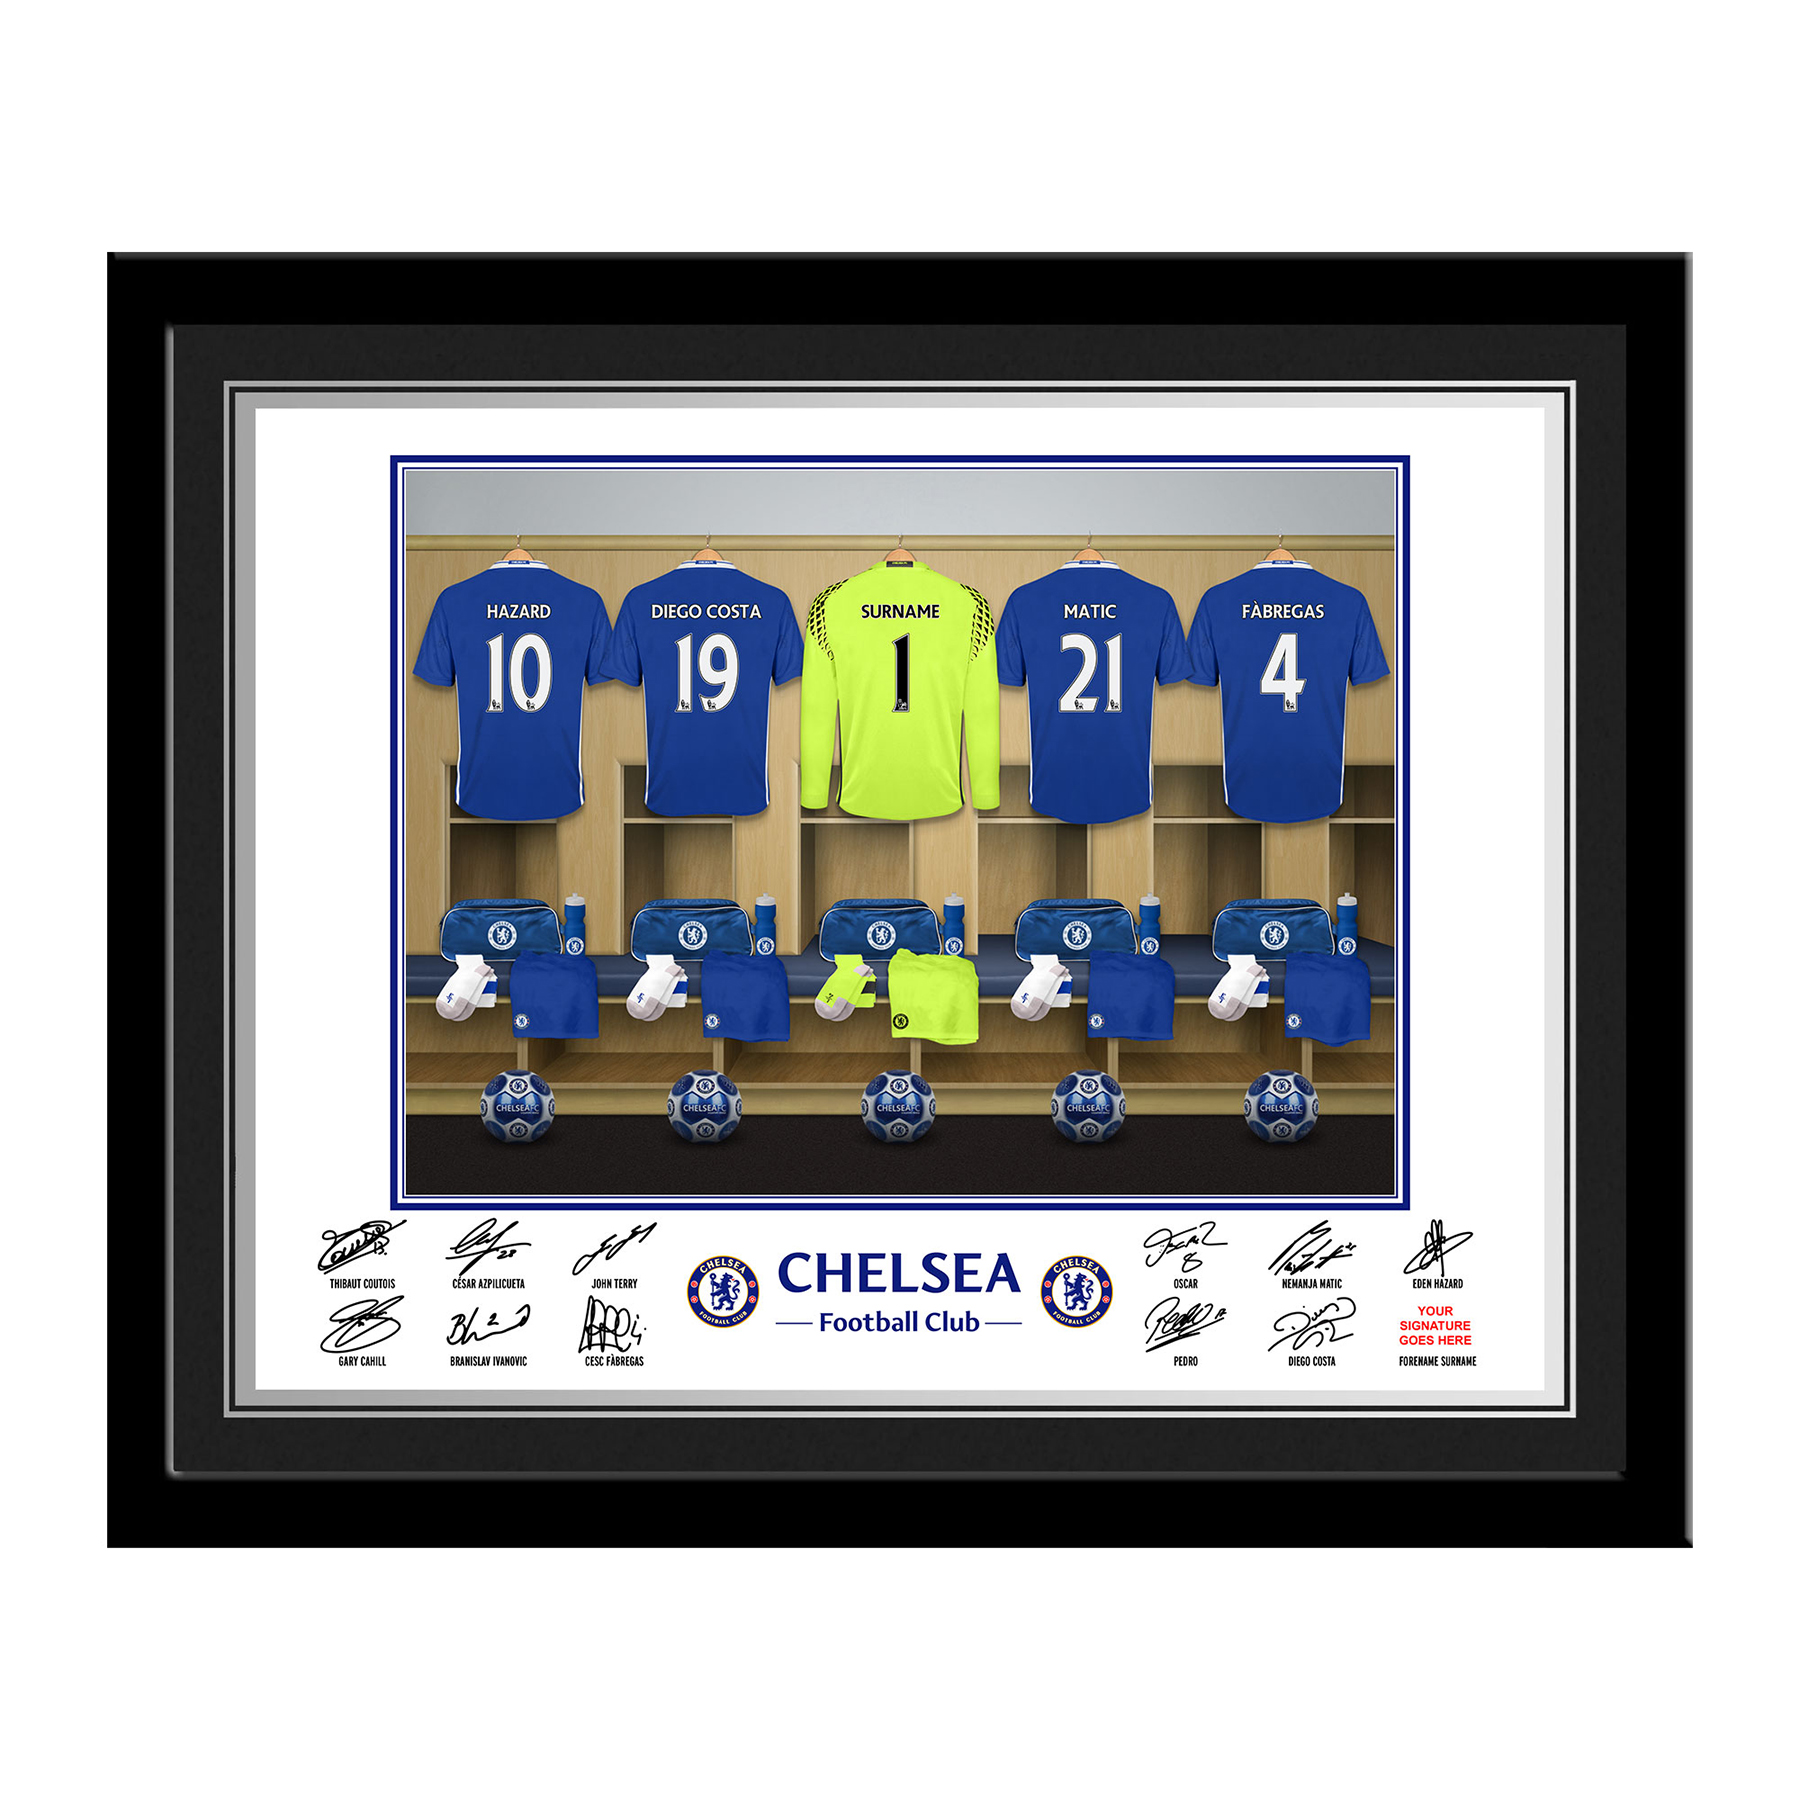 Chelsea Personalised Goal Keeper Dressing Room Photo Framed